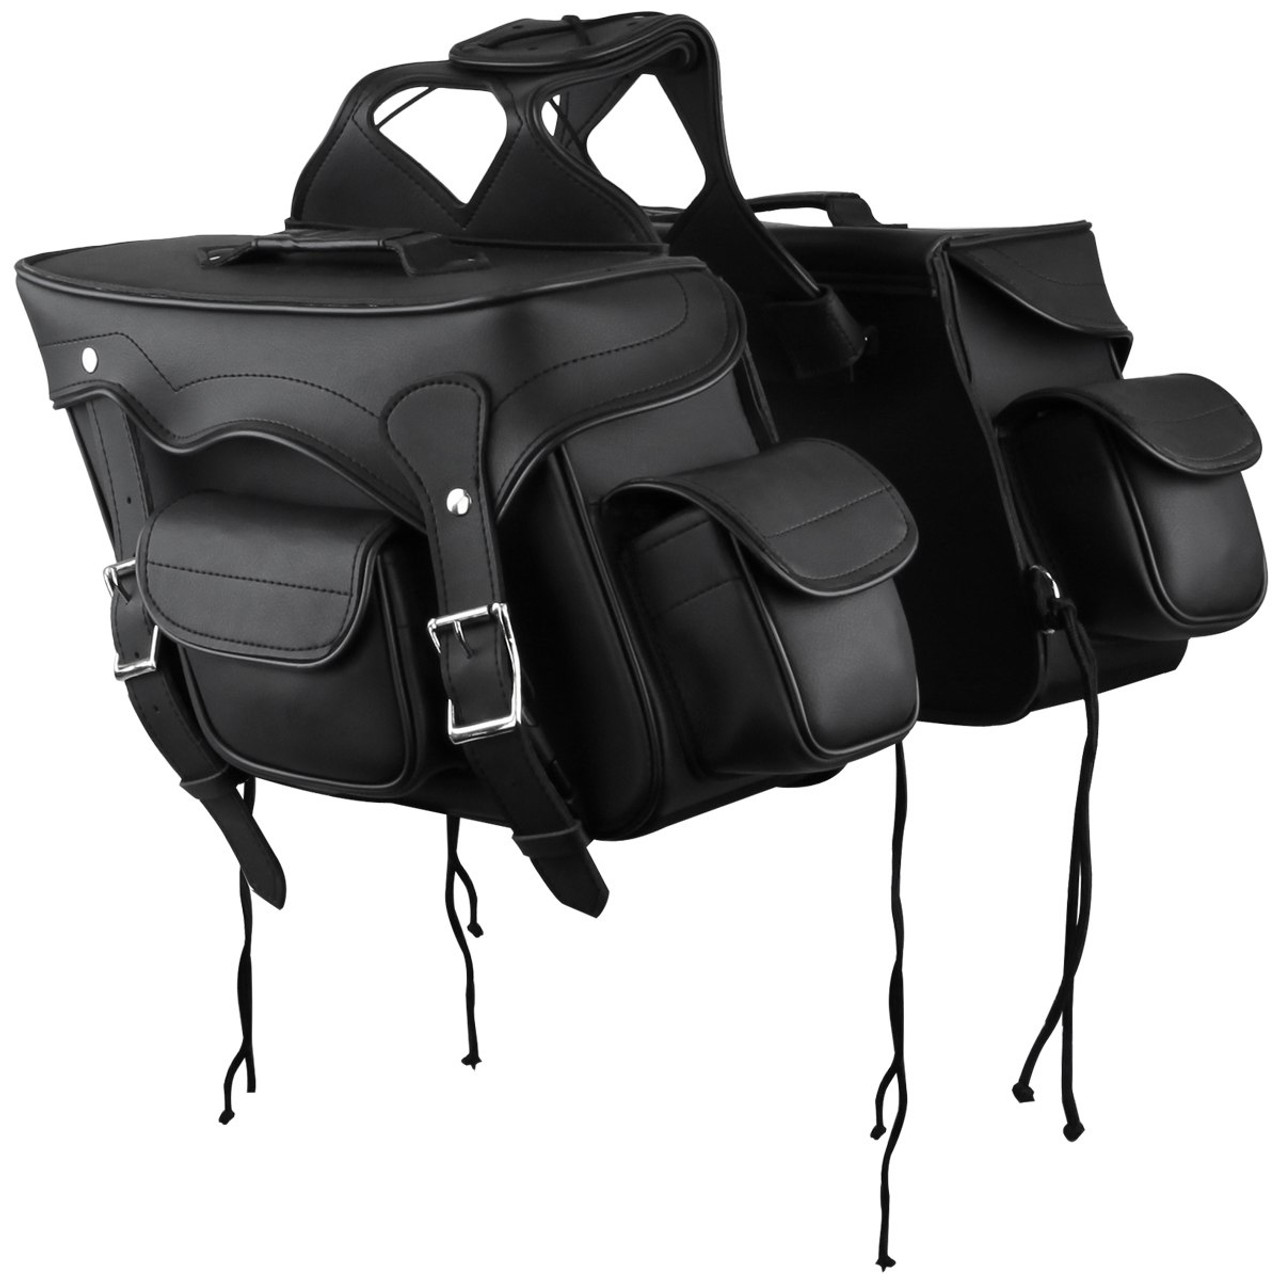 8d020f7a74 Small Double Pocket Plain PVC Motorcycle Saddlebags - Team Motorcycle